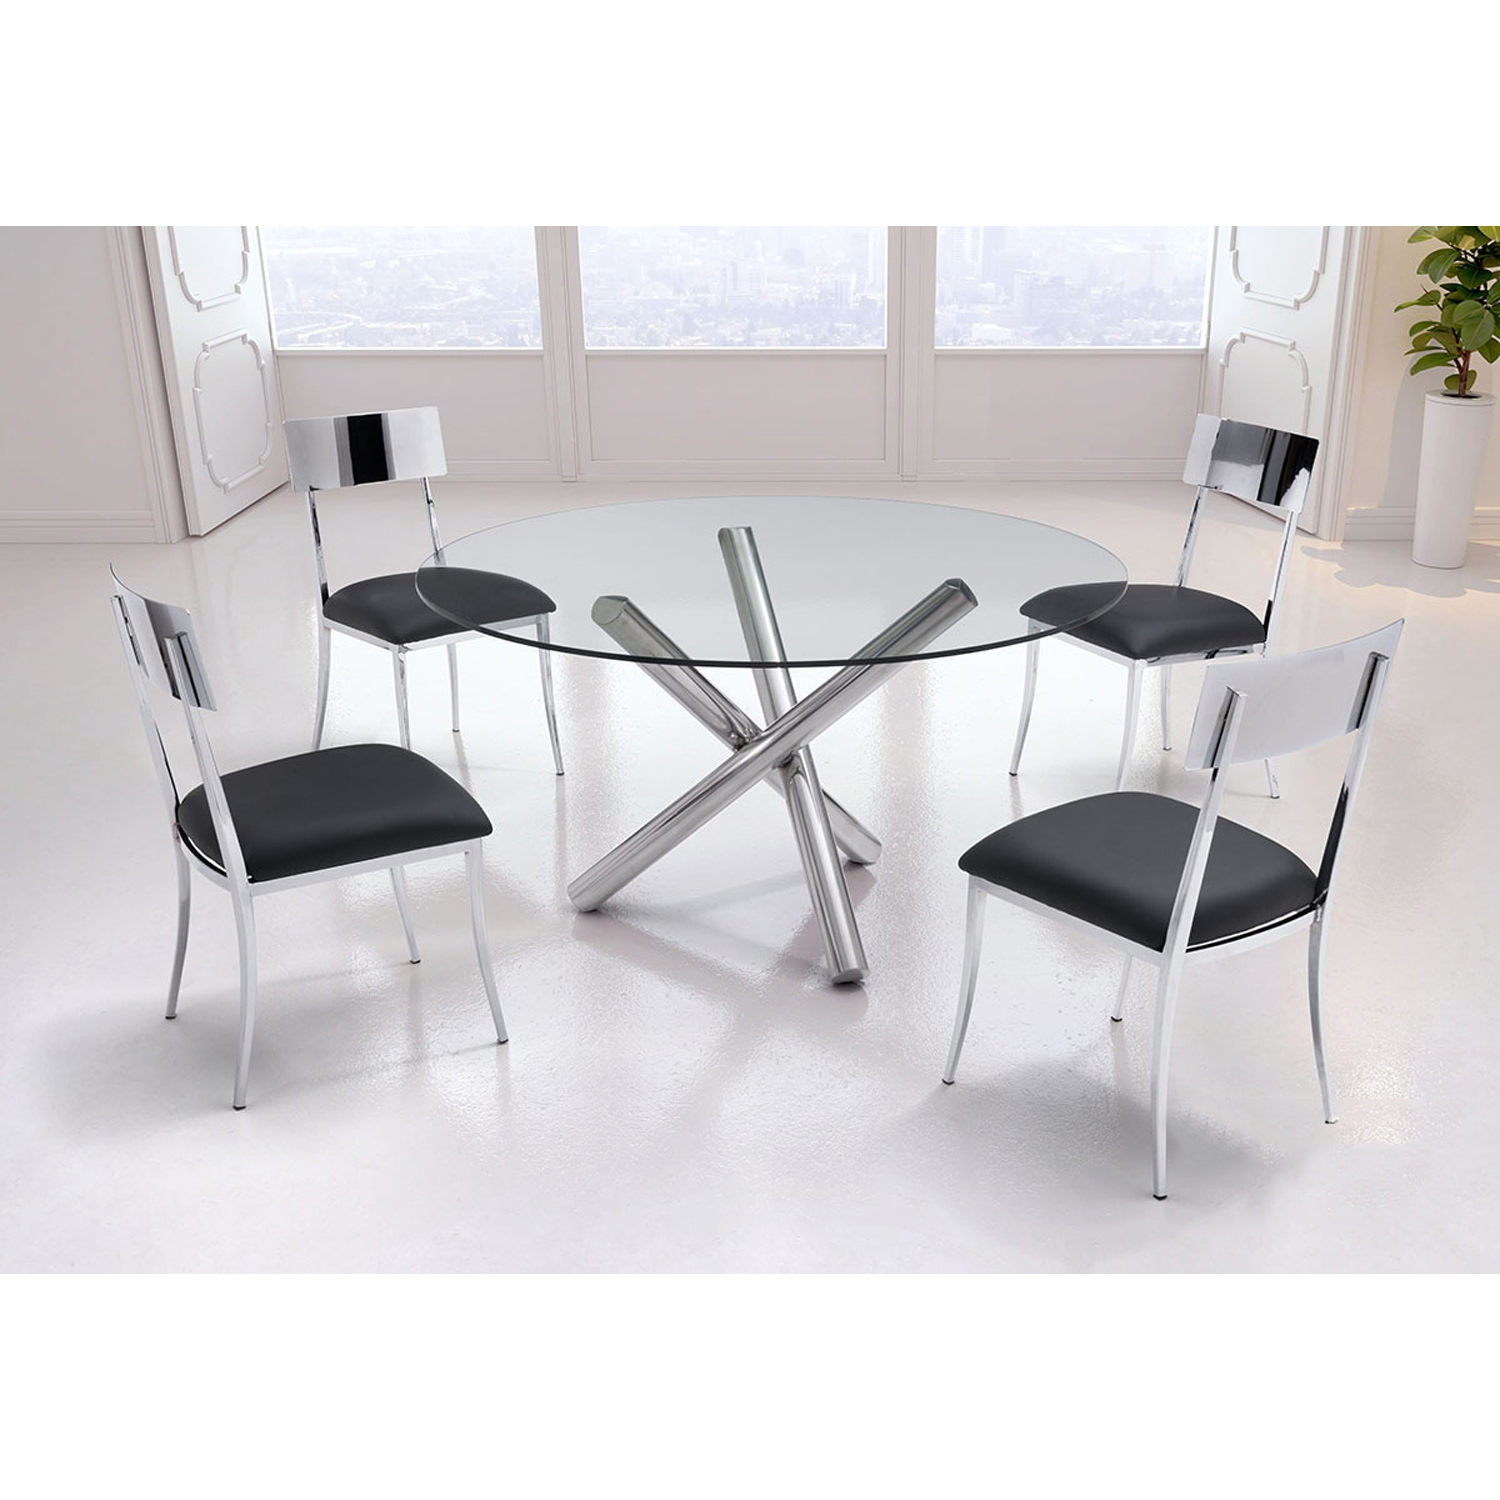 Mach Dining Chair - Black - ZM-100353